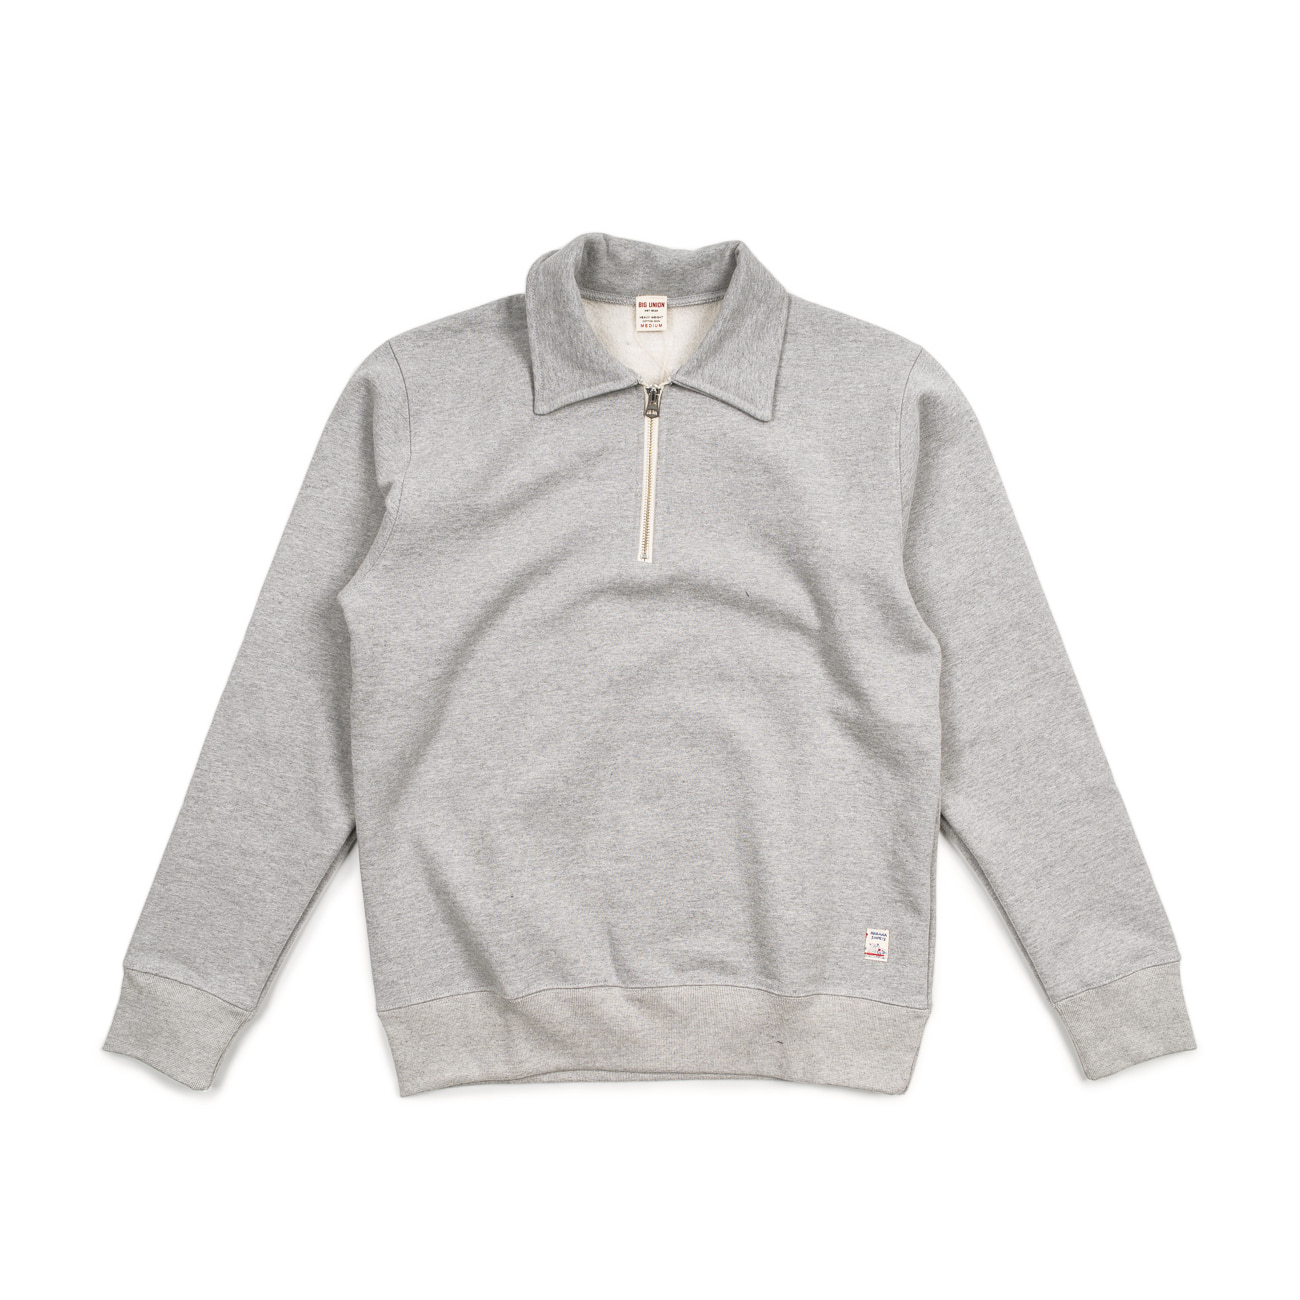 1/2 Zip Sweatshirt